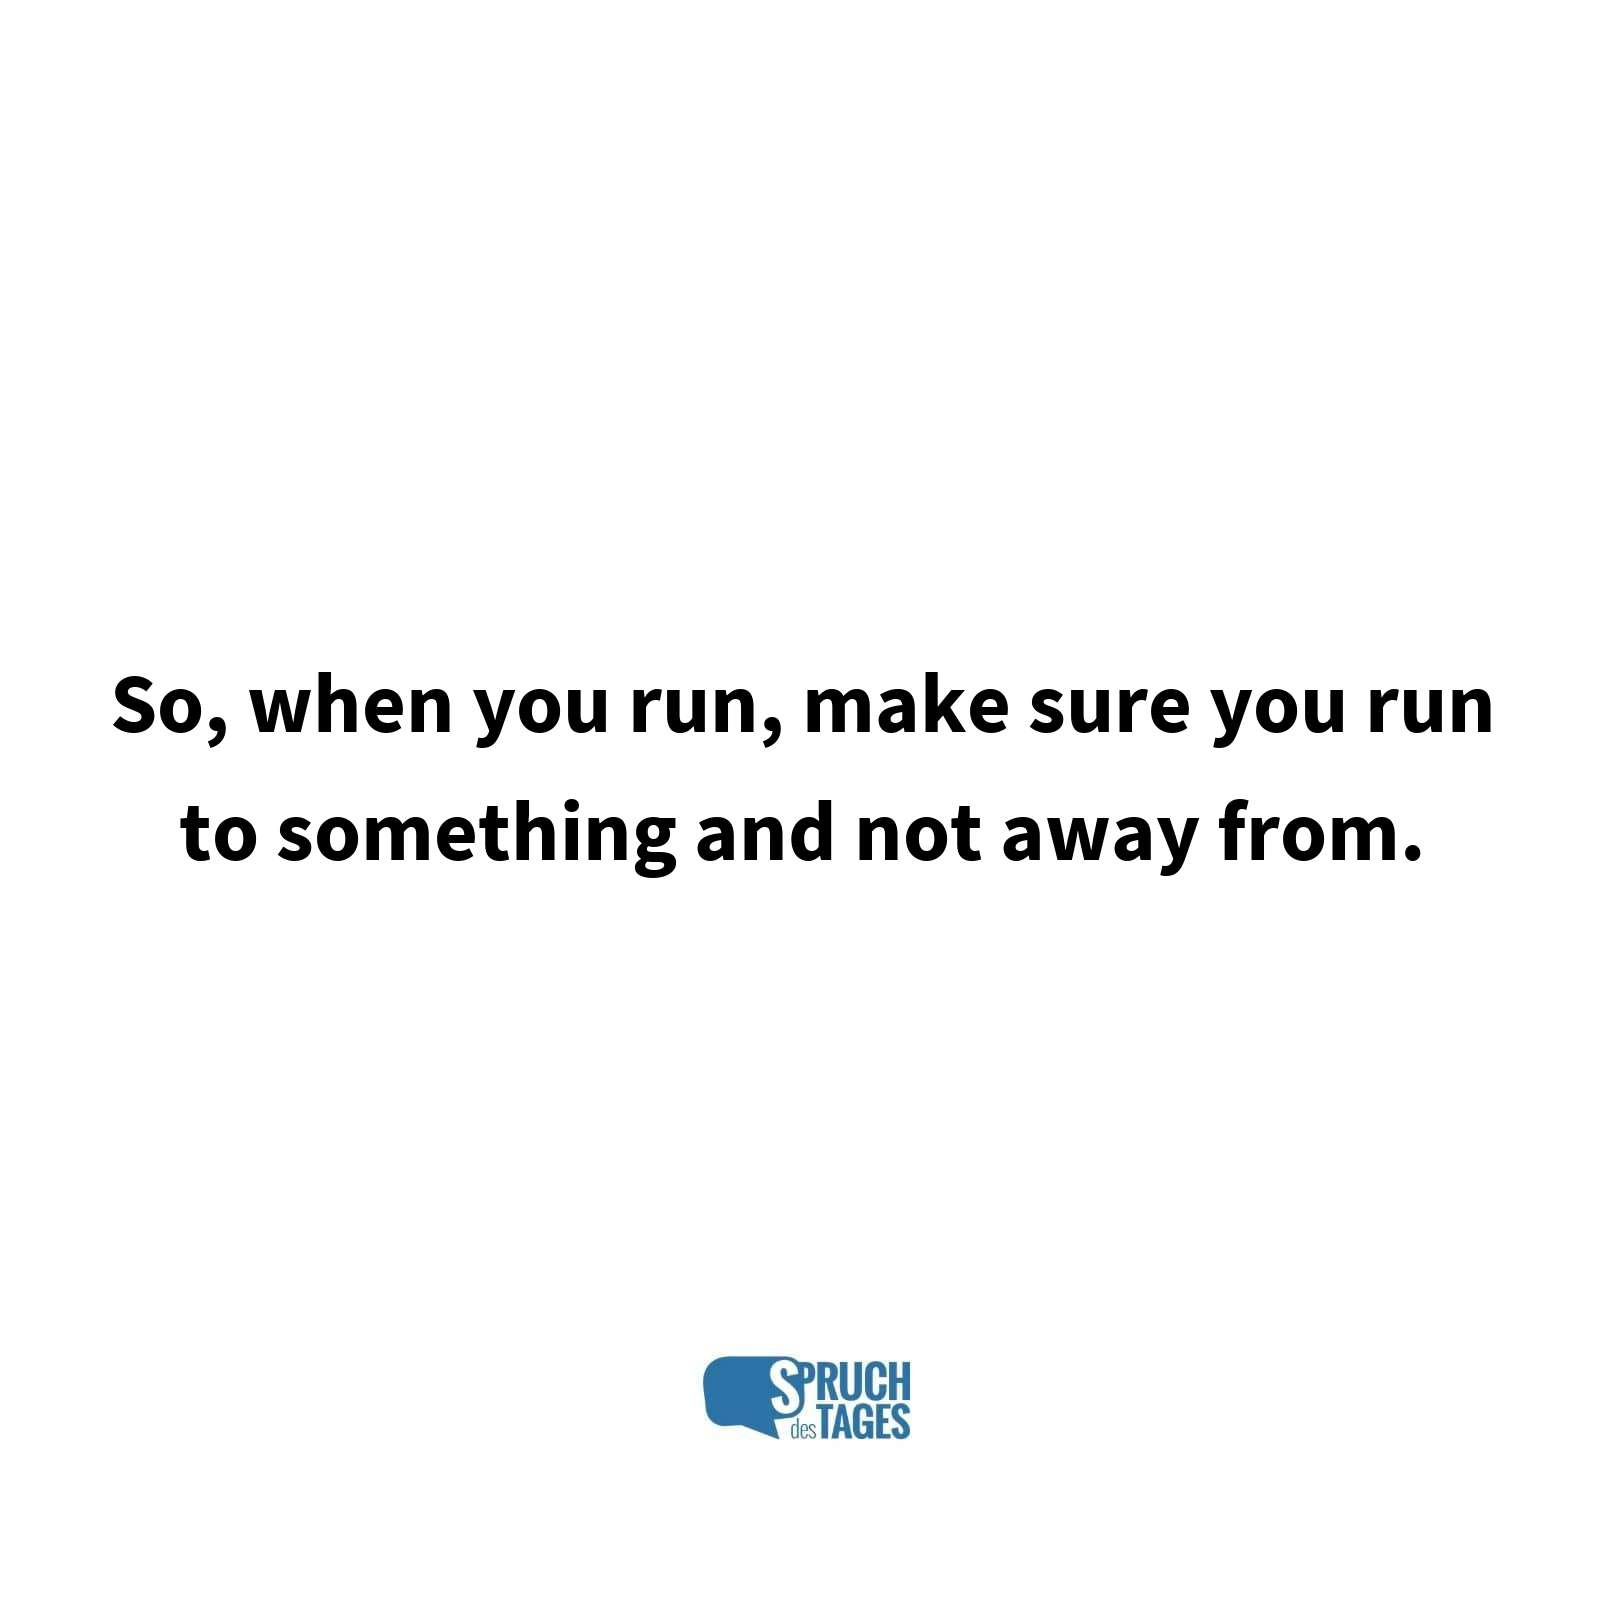 So,when you run, make sure you run to something and not away from.